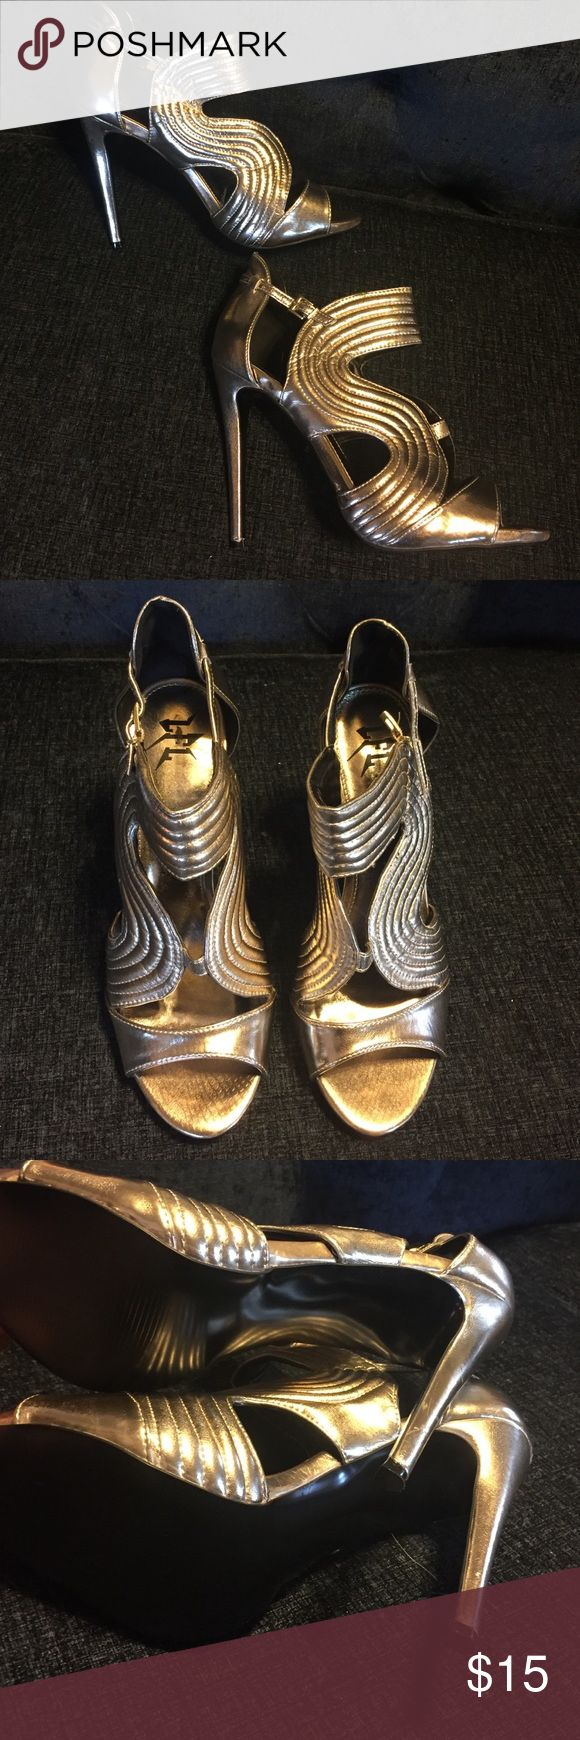 """LFL gold strappy high heels pumps sexy chic glam Great condition, only worn once for New Years last year! Perfect for any sparkly outfit! These shoes are definitely gold, but they could pass for silver with the right outfit. 5"""" heels. True to size LFL Shoes Heels"""